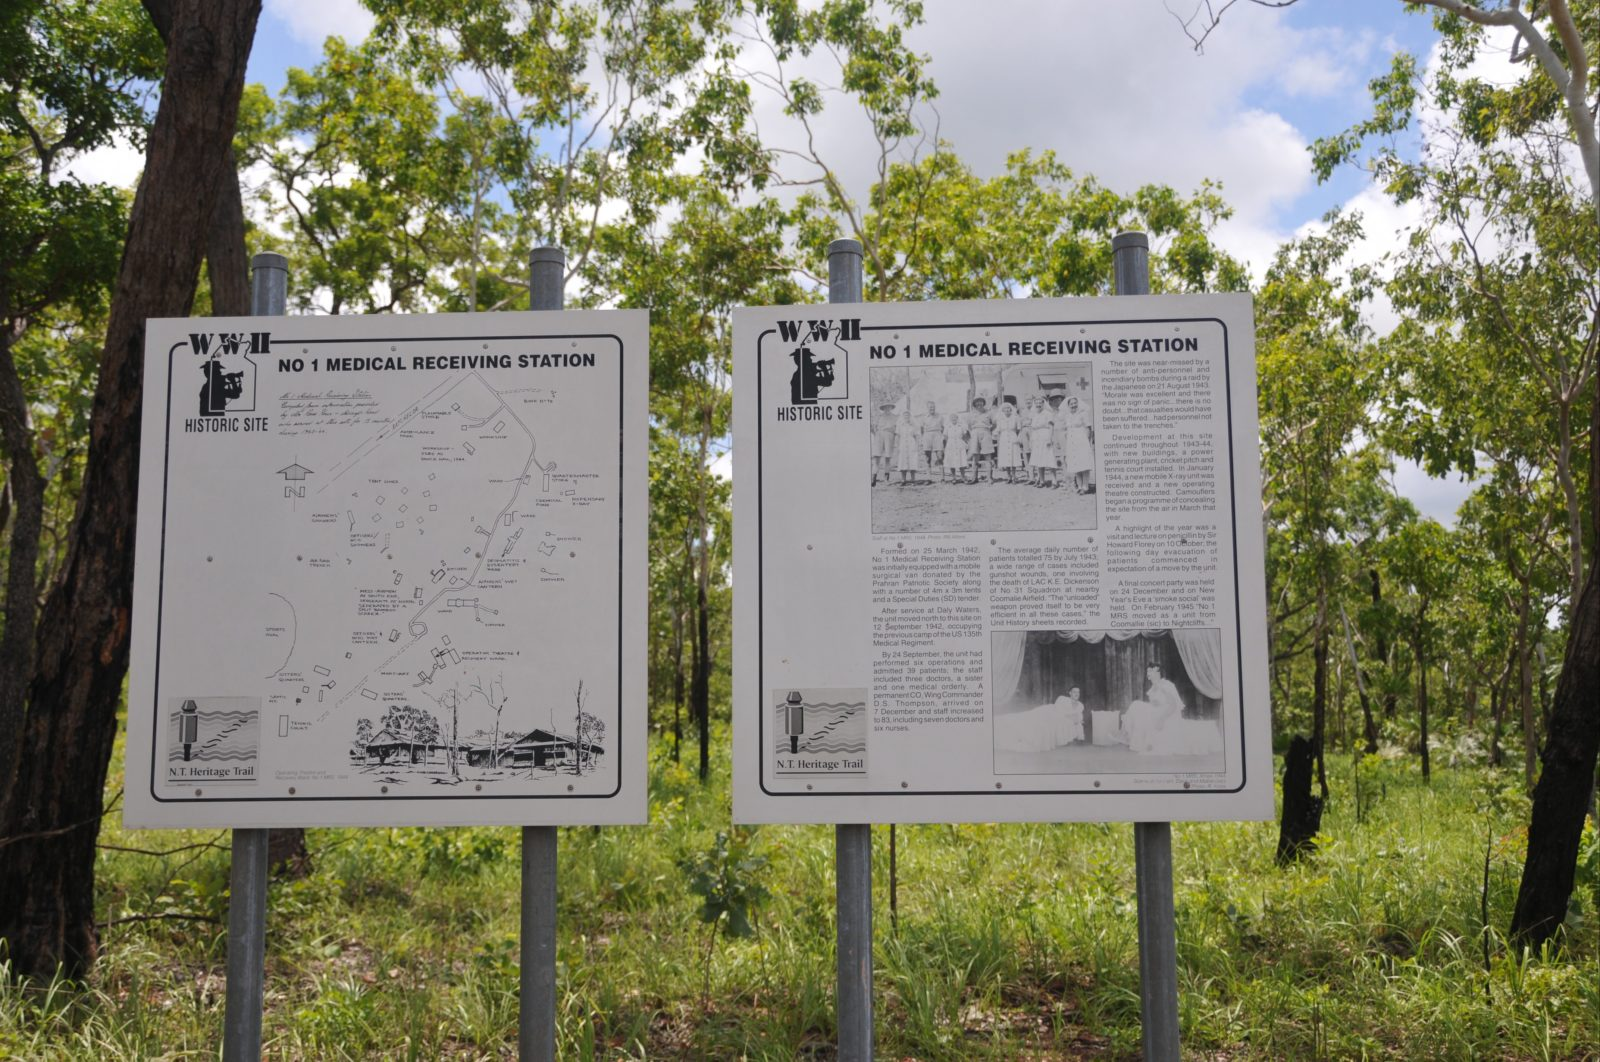 Interpretative panels at the Batchelor Road entrance.